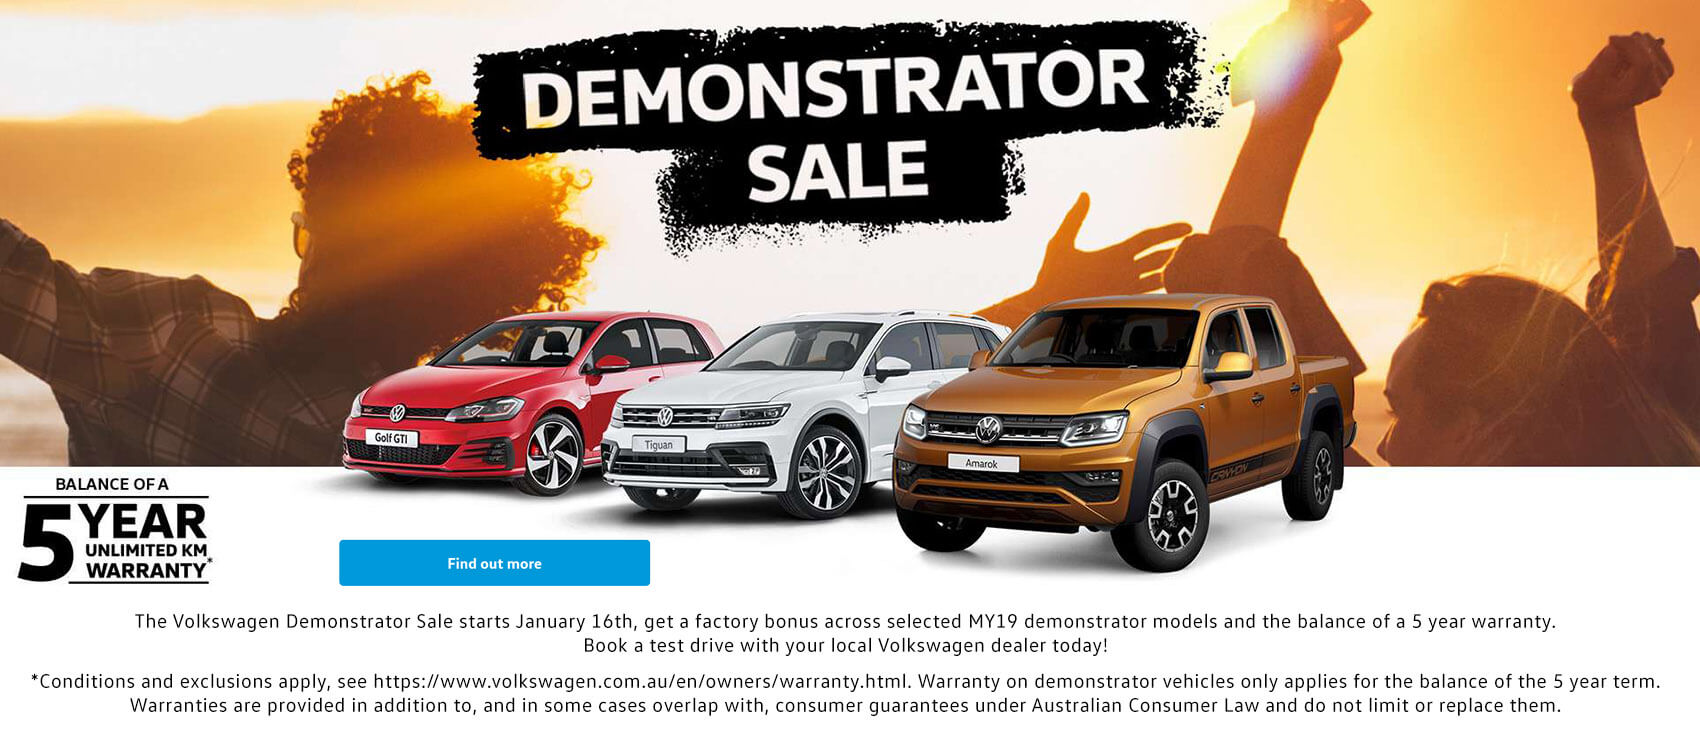 The Volkswagen Demonstrator Sale starts January 16th, get a factory bonus across selected MY19 demonstrator models and the balance of a 5 year warranty. Book a test drive with Albany Volkswagen